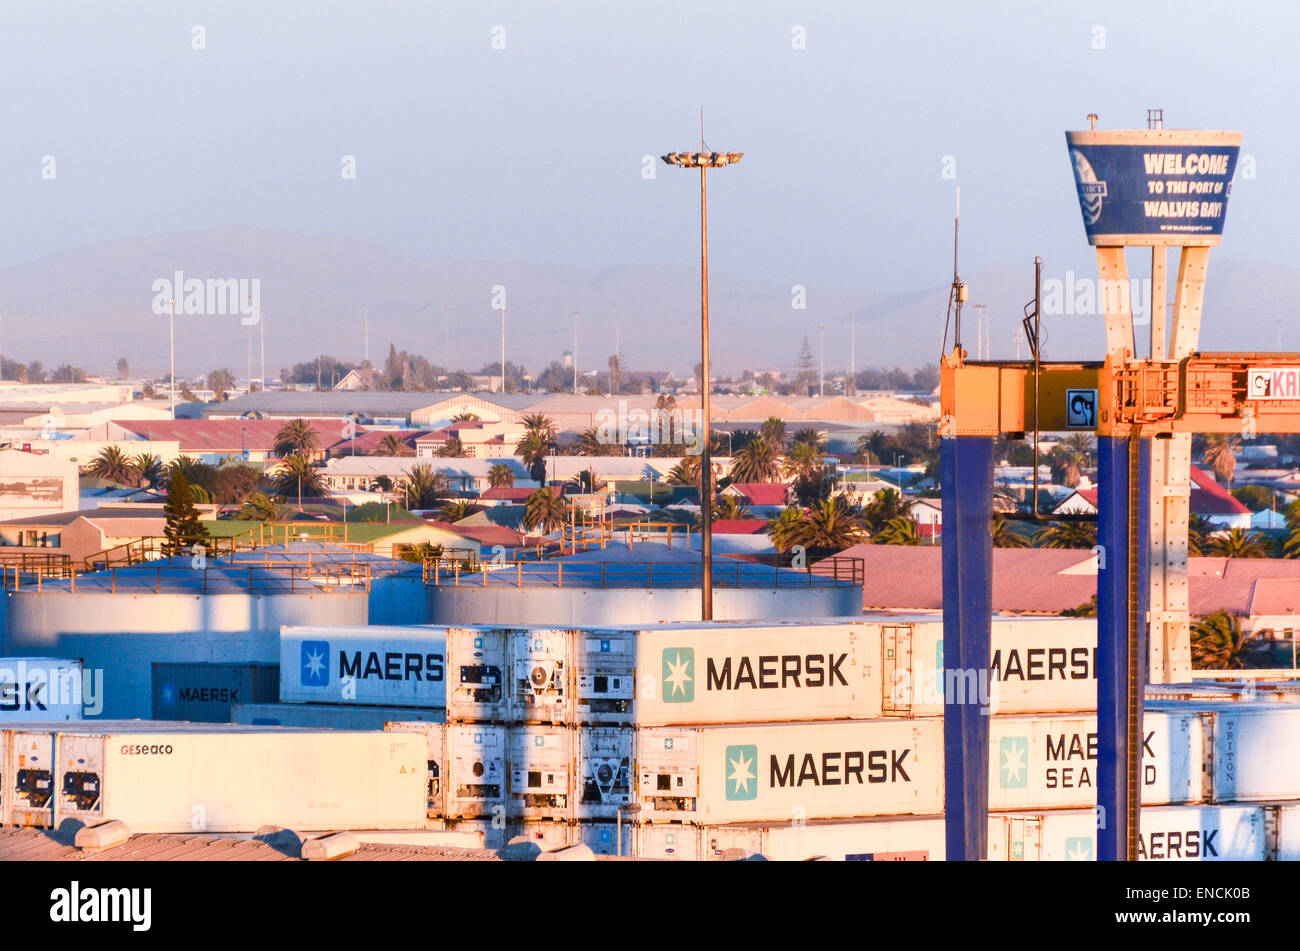 Maersk containers at the container terminal of the port of Walvis Bay, Namibia - Stock Image